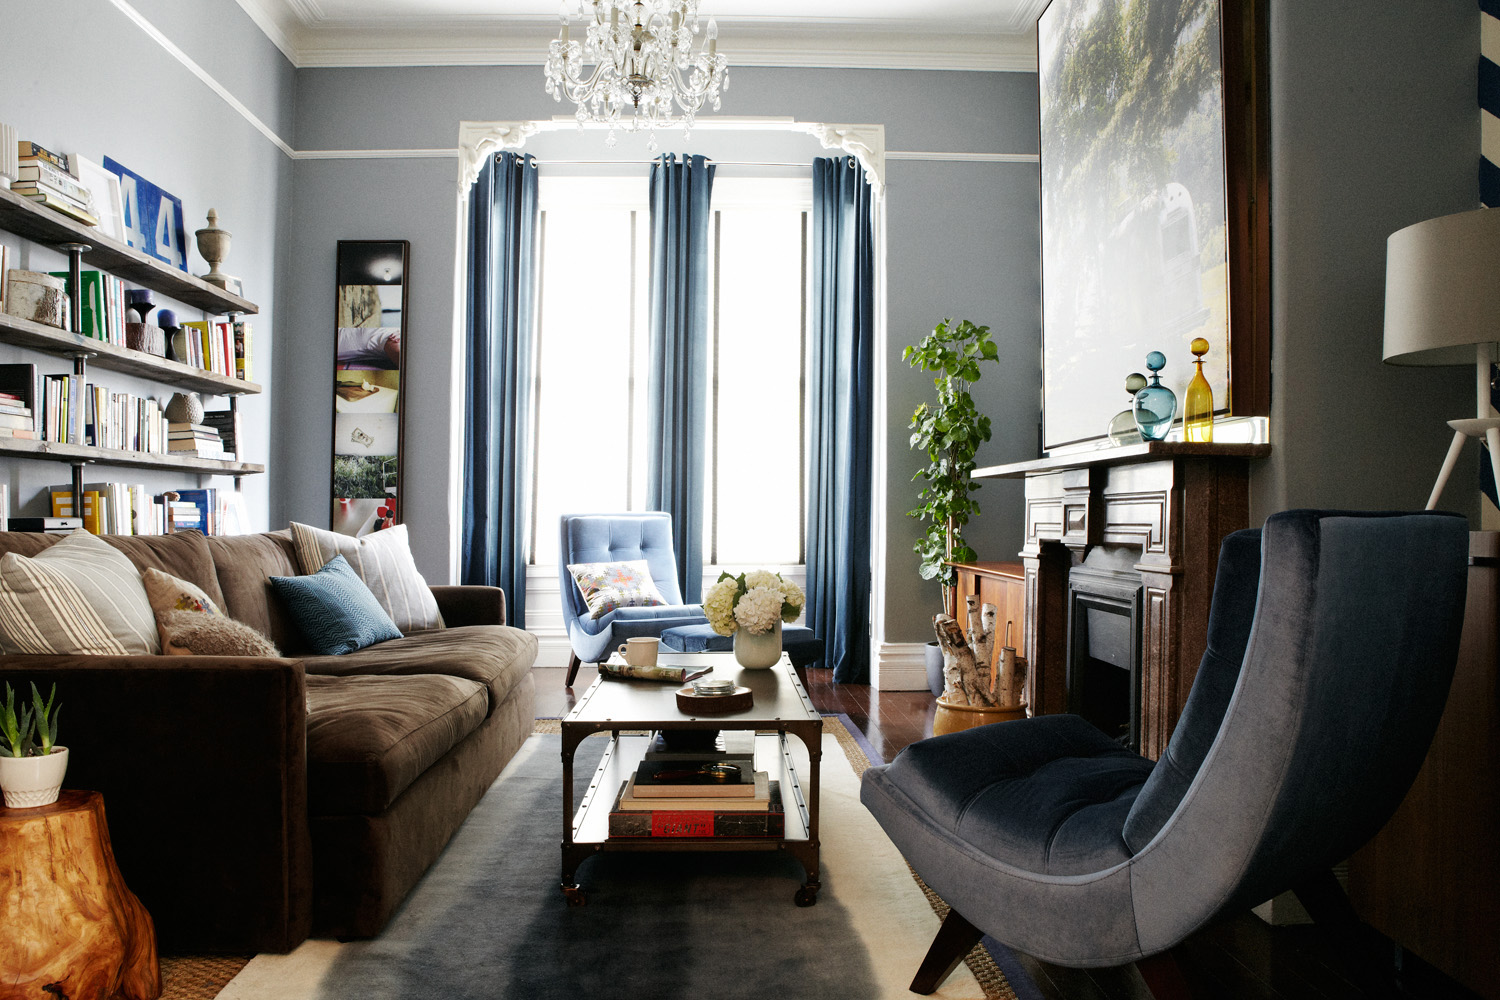 Diverting Play Up Good Bones A Designer Shares Quick Tricks Making Any Place Feel Like Home Decorating Rental Houses home decor Decorating Rental Homes